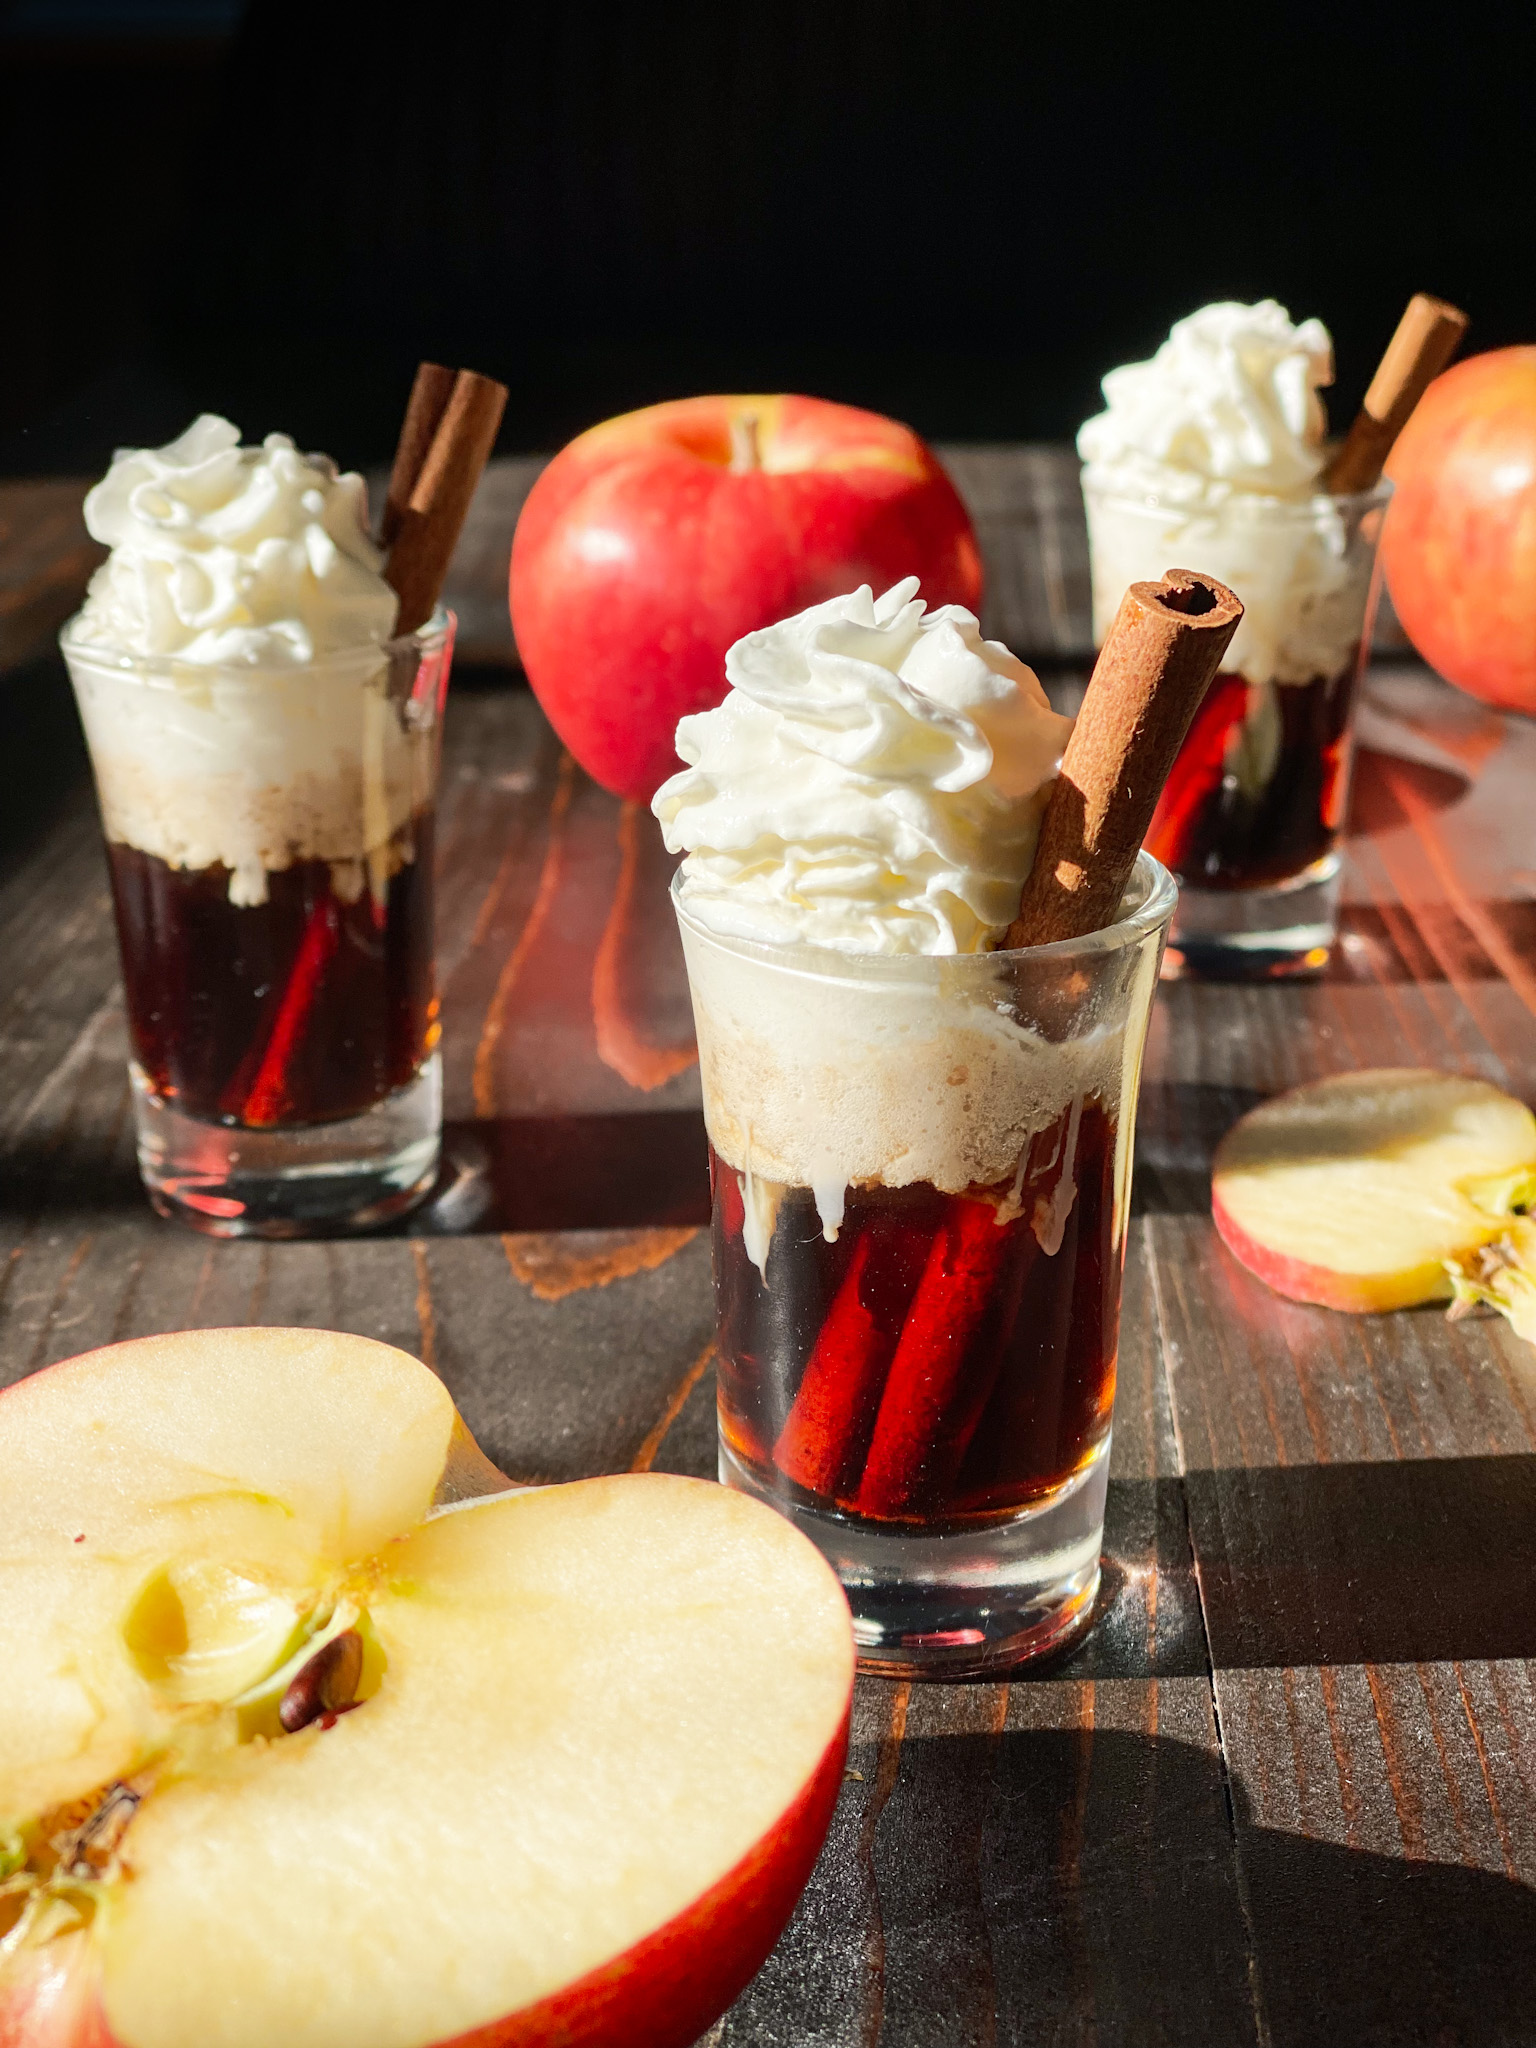 Apple Cinnamon Bourbon shots with whip cream and apples with one sliced